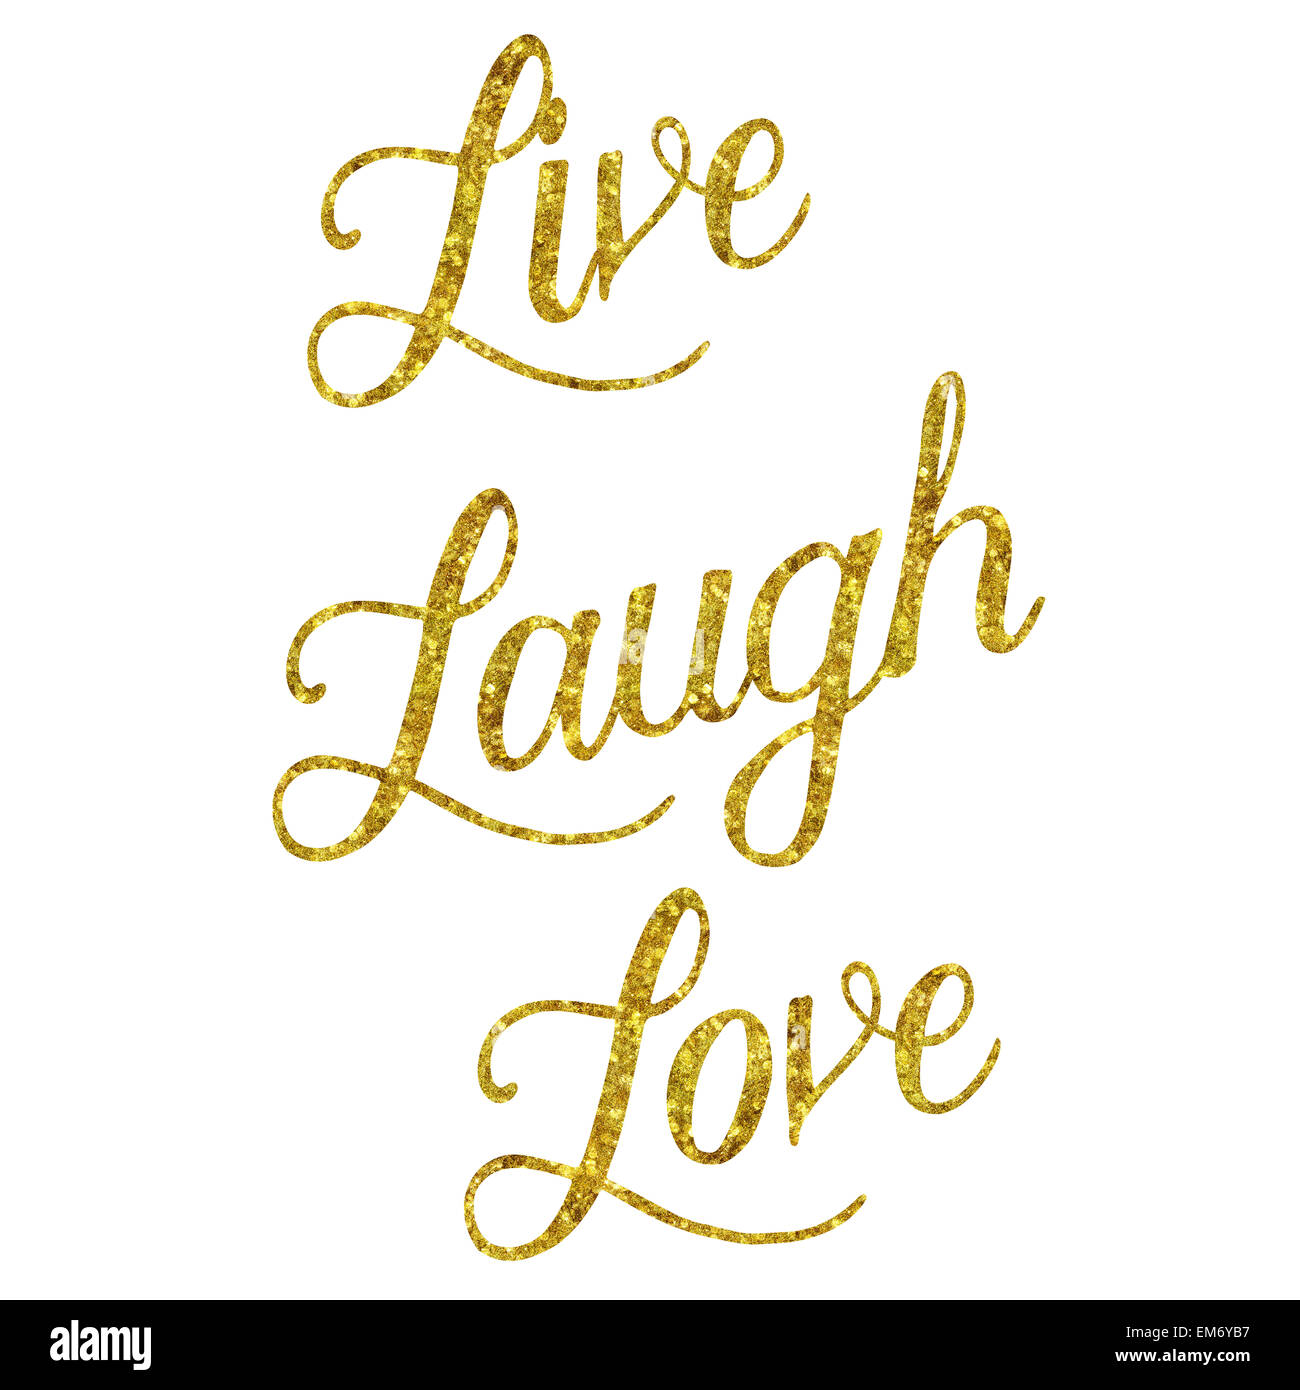 Live Laugh Love Stock Photos & Live Laugh Love Stock Images - Alamy